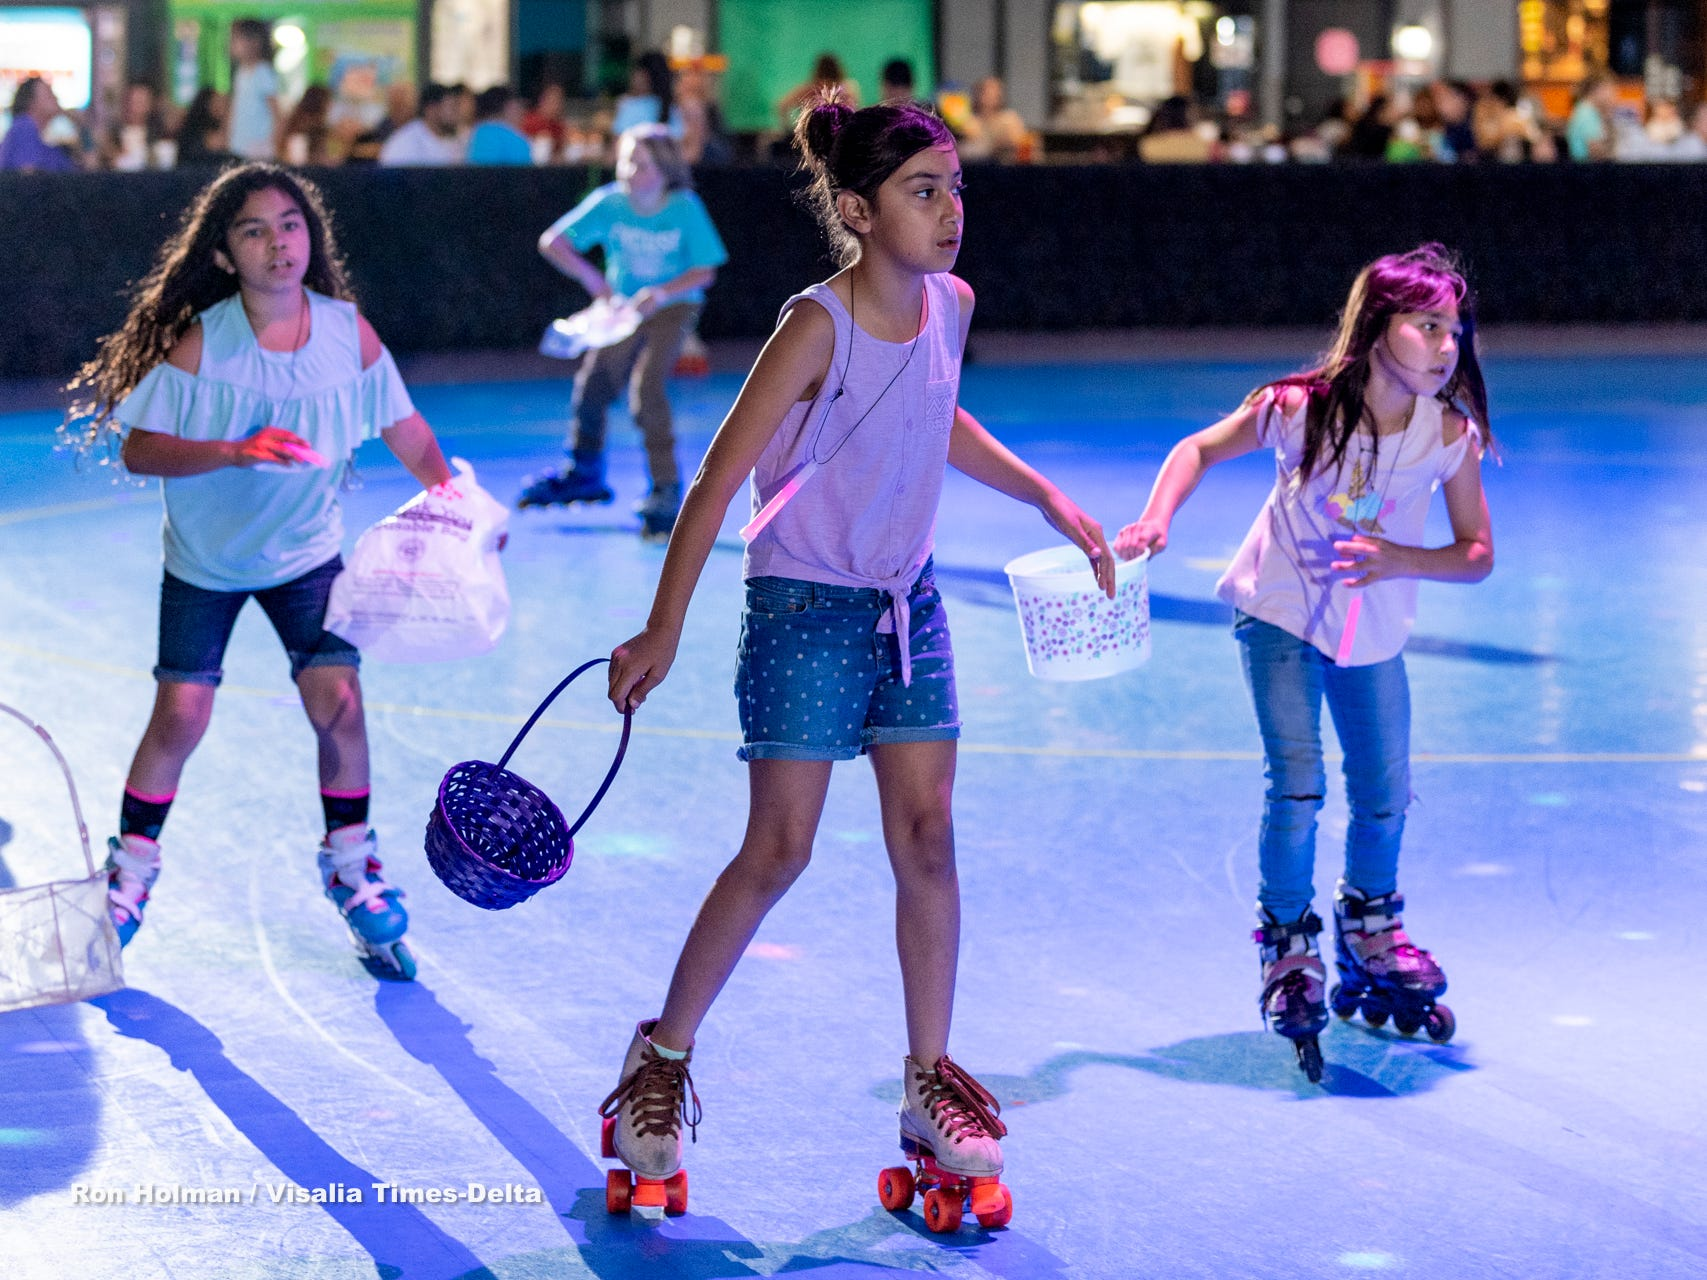 Skaters at RollerTowne in Visalia scramble for candy and prizes during their pre-Easter egg hunt on Friday, April 19, 2019.